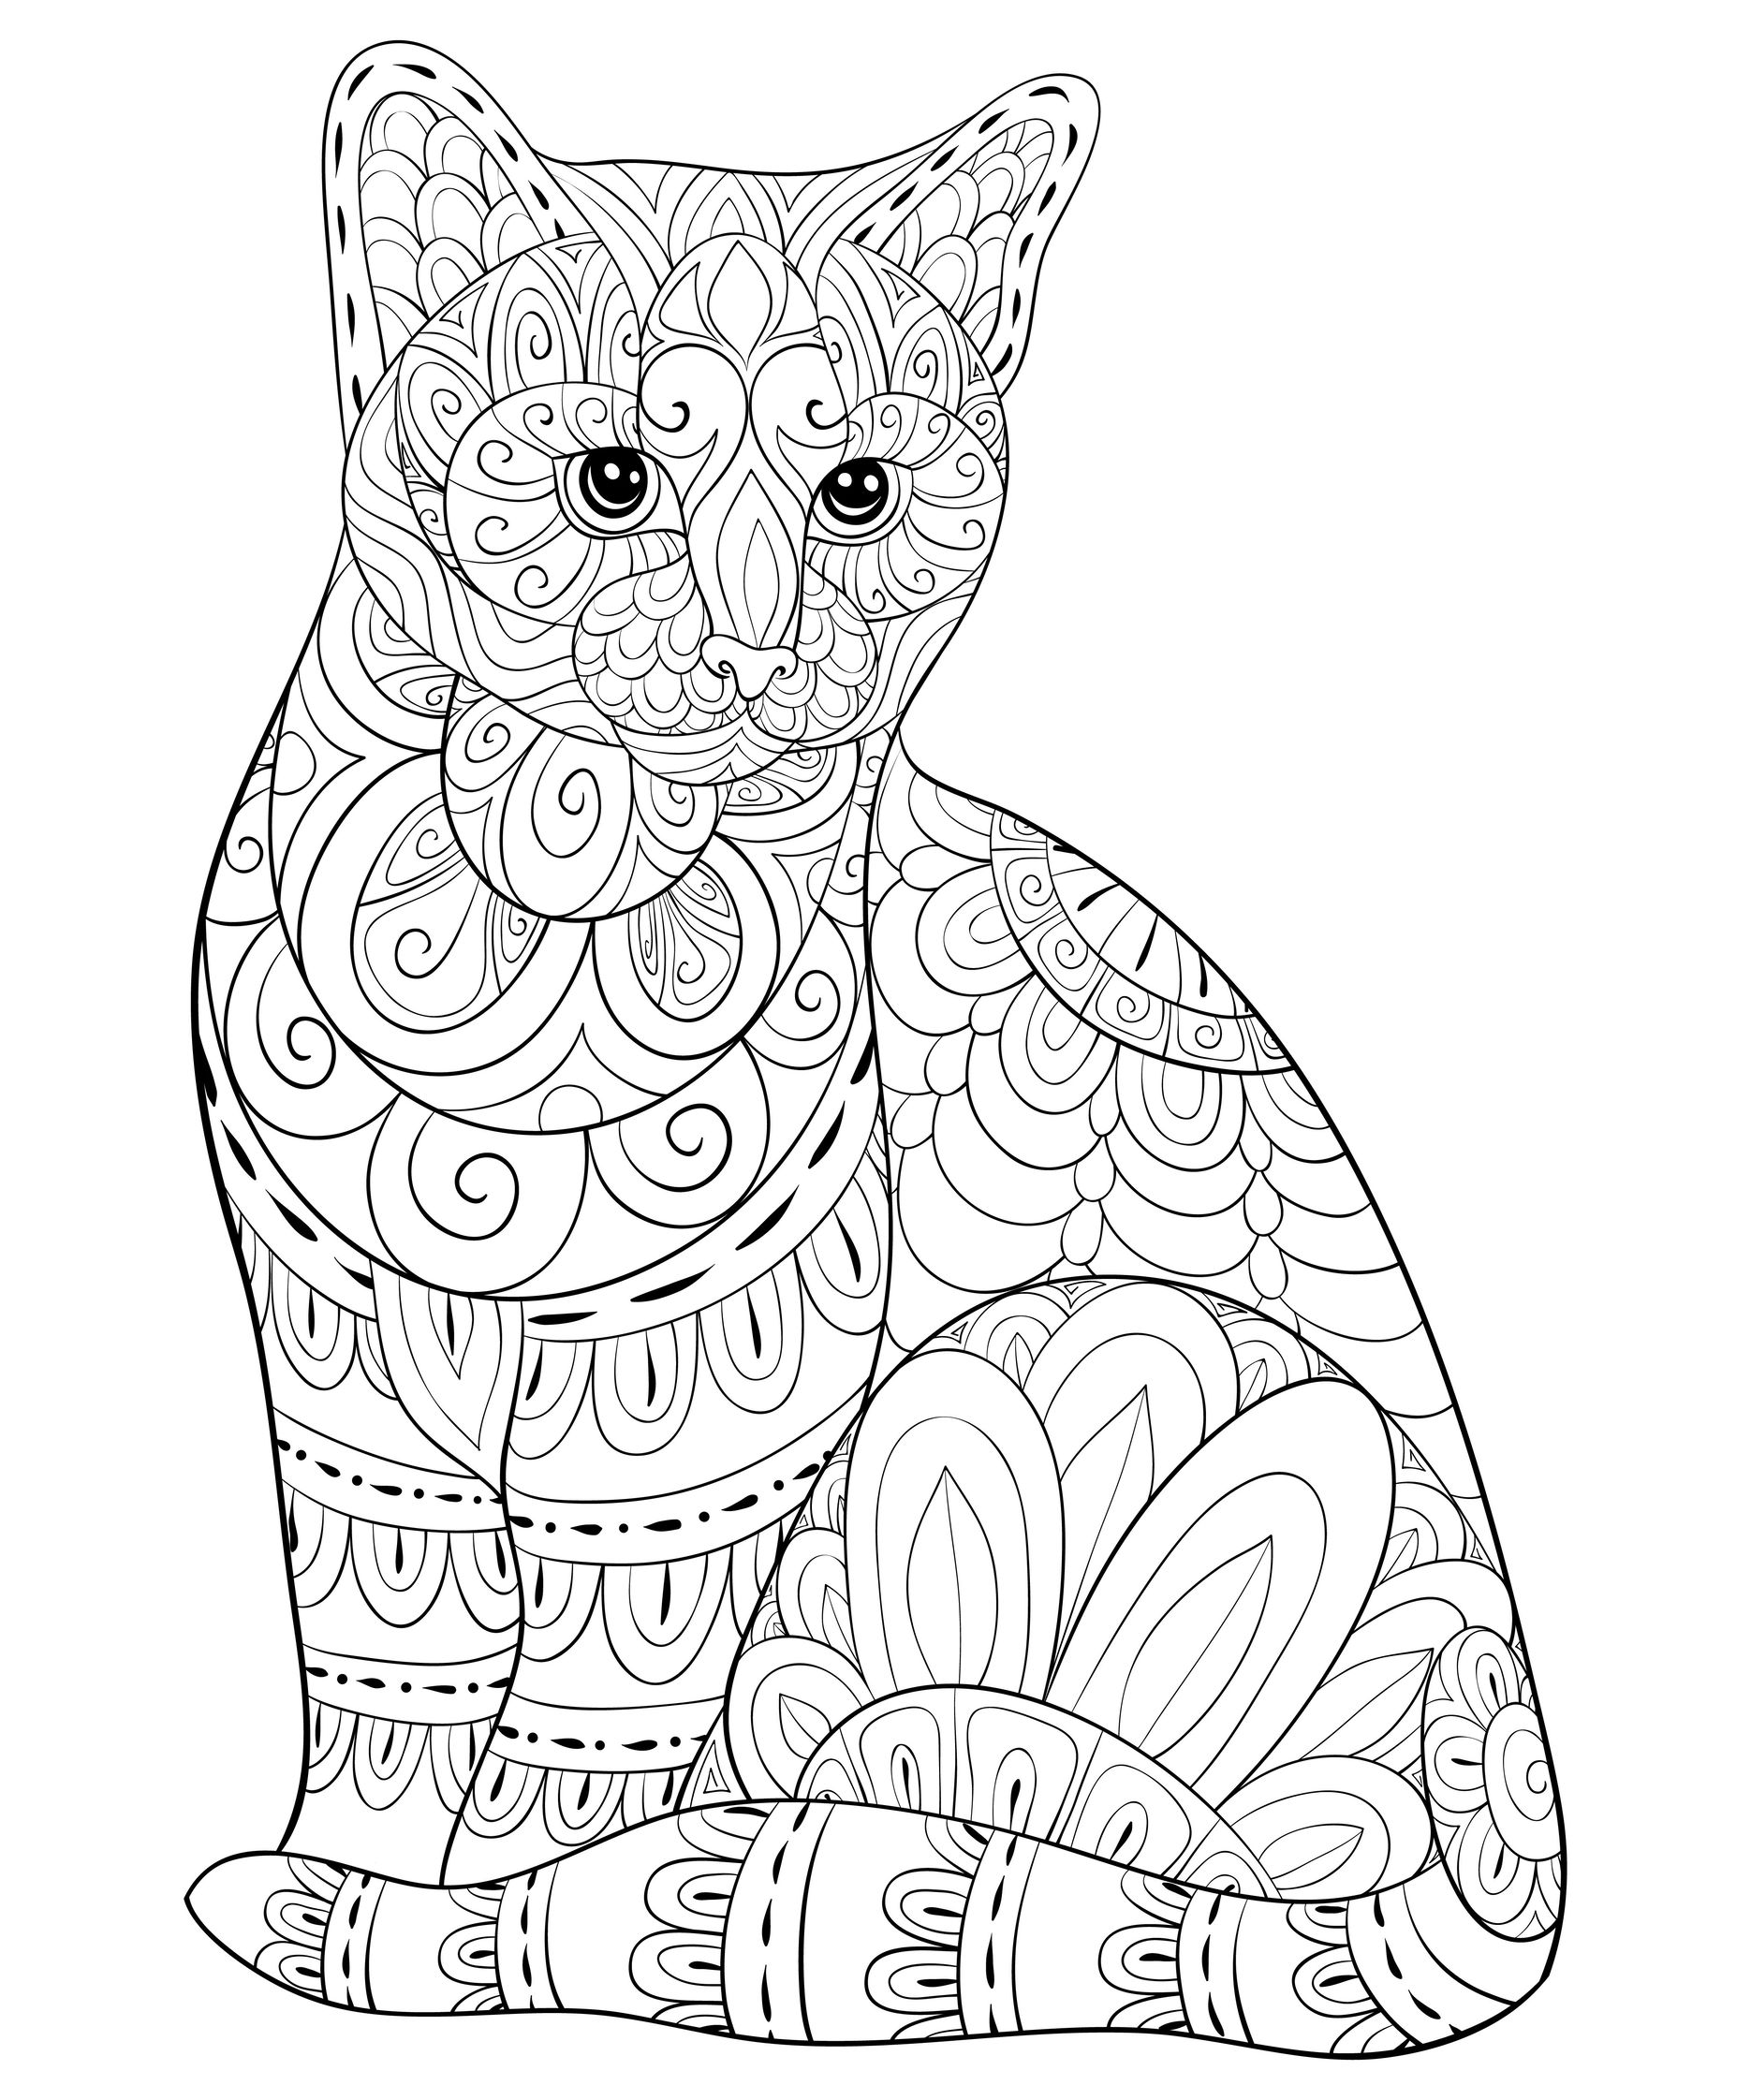 Best Female Cat Coloring Pages Free 916 Printable Coloringace ... | 2243x1870